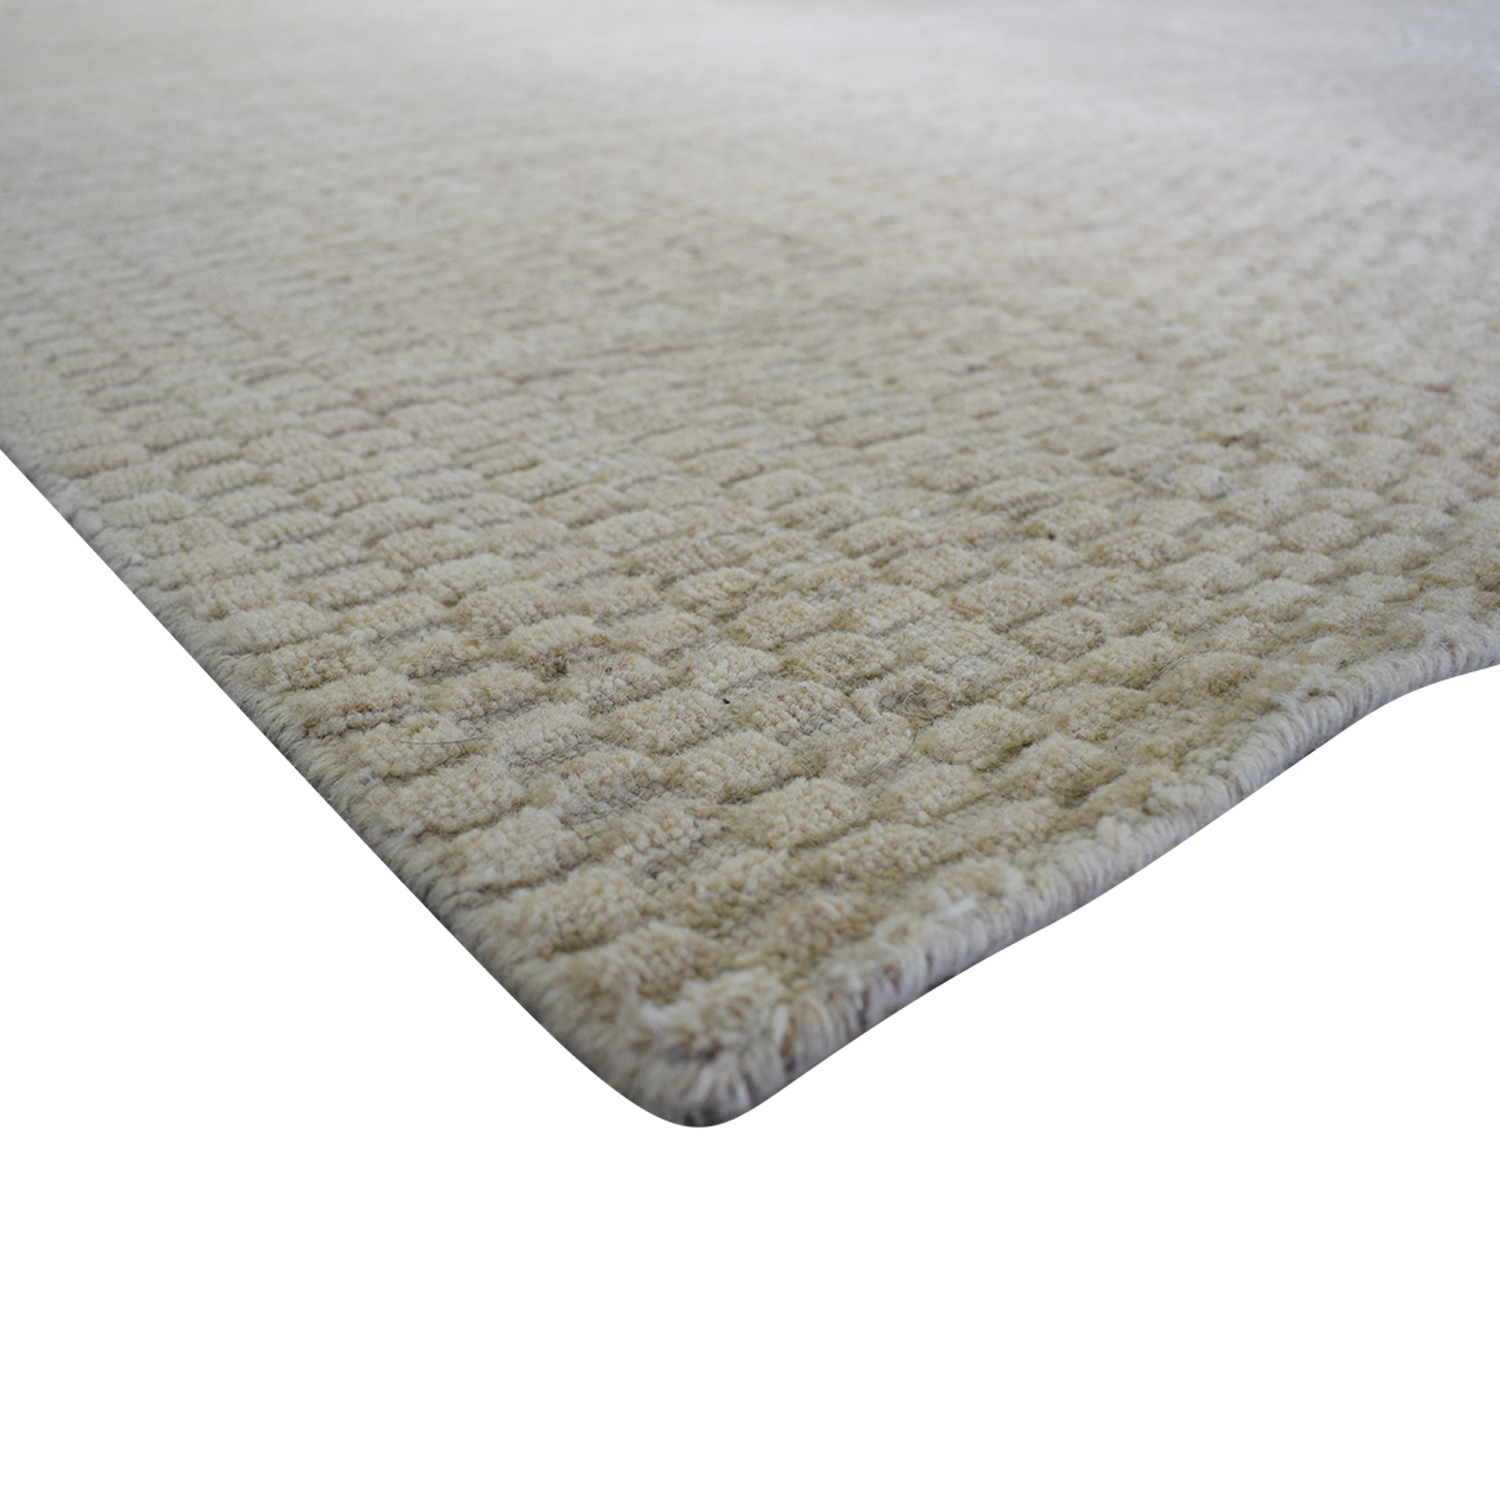 ABC Carpet & Home Area Rug / Decor